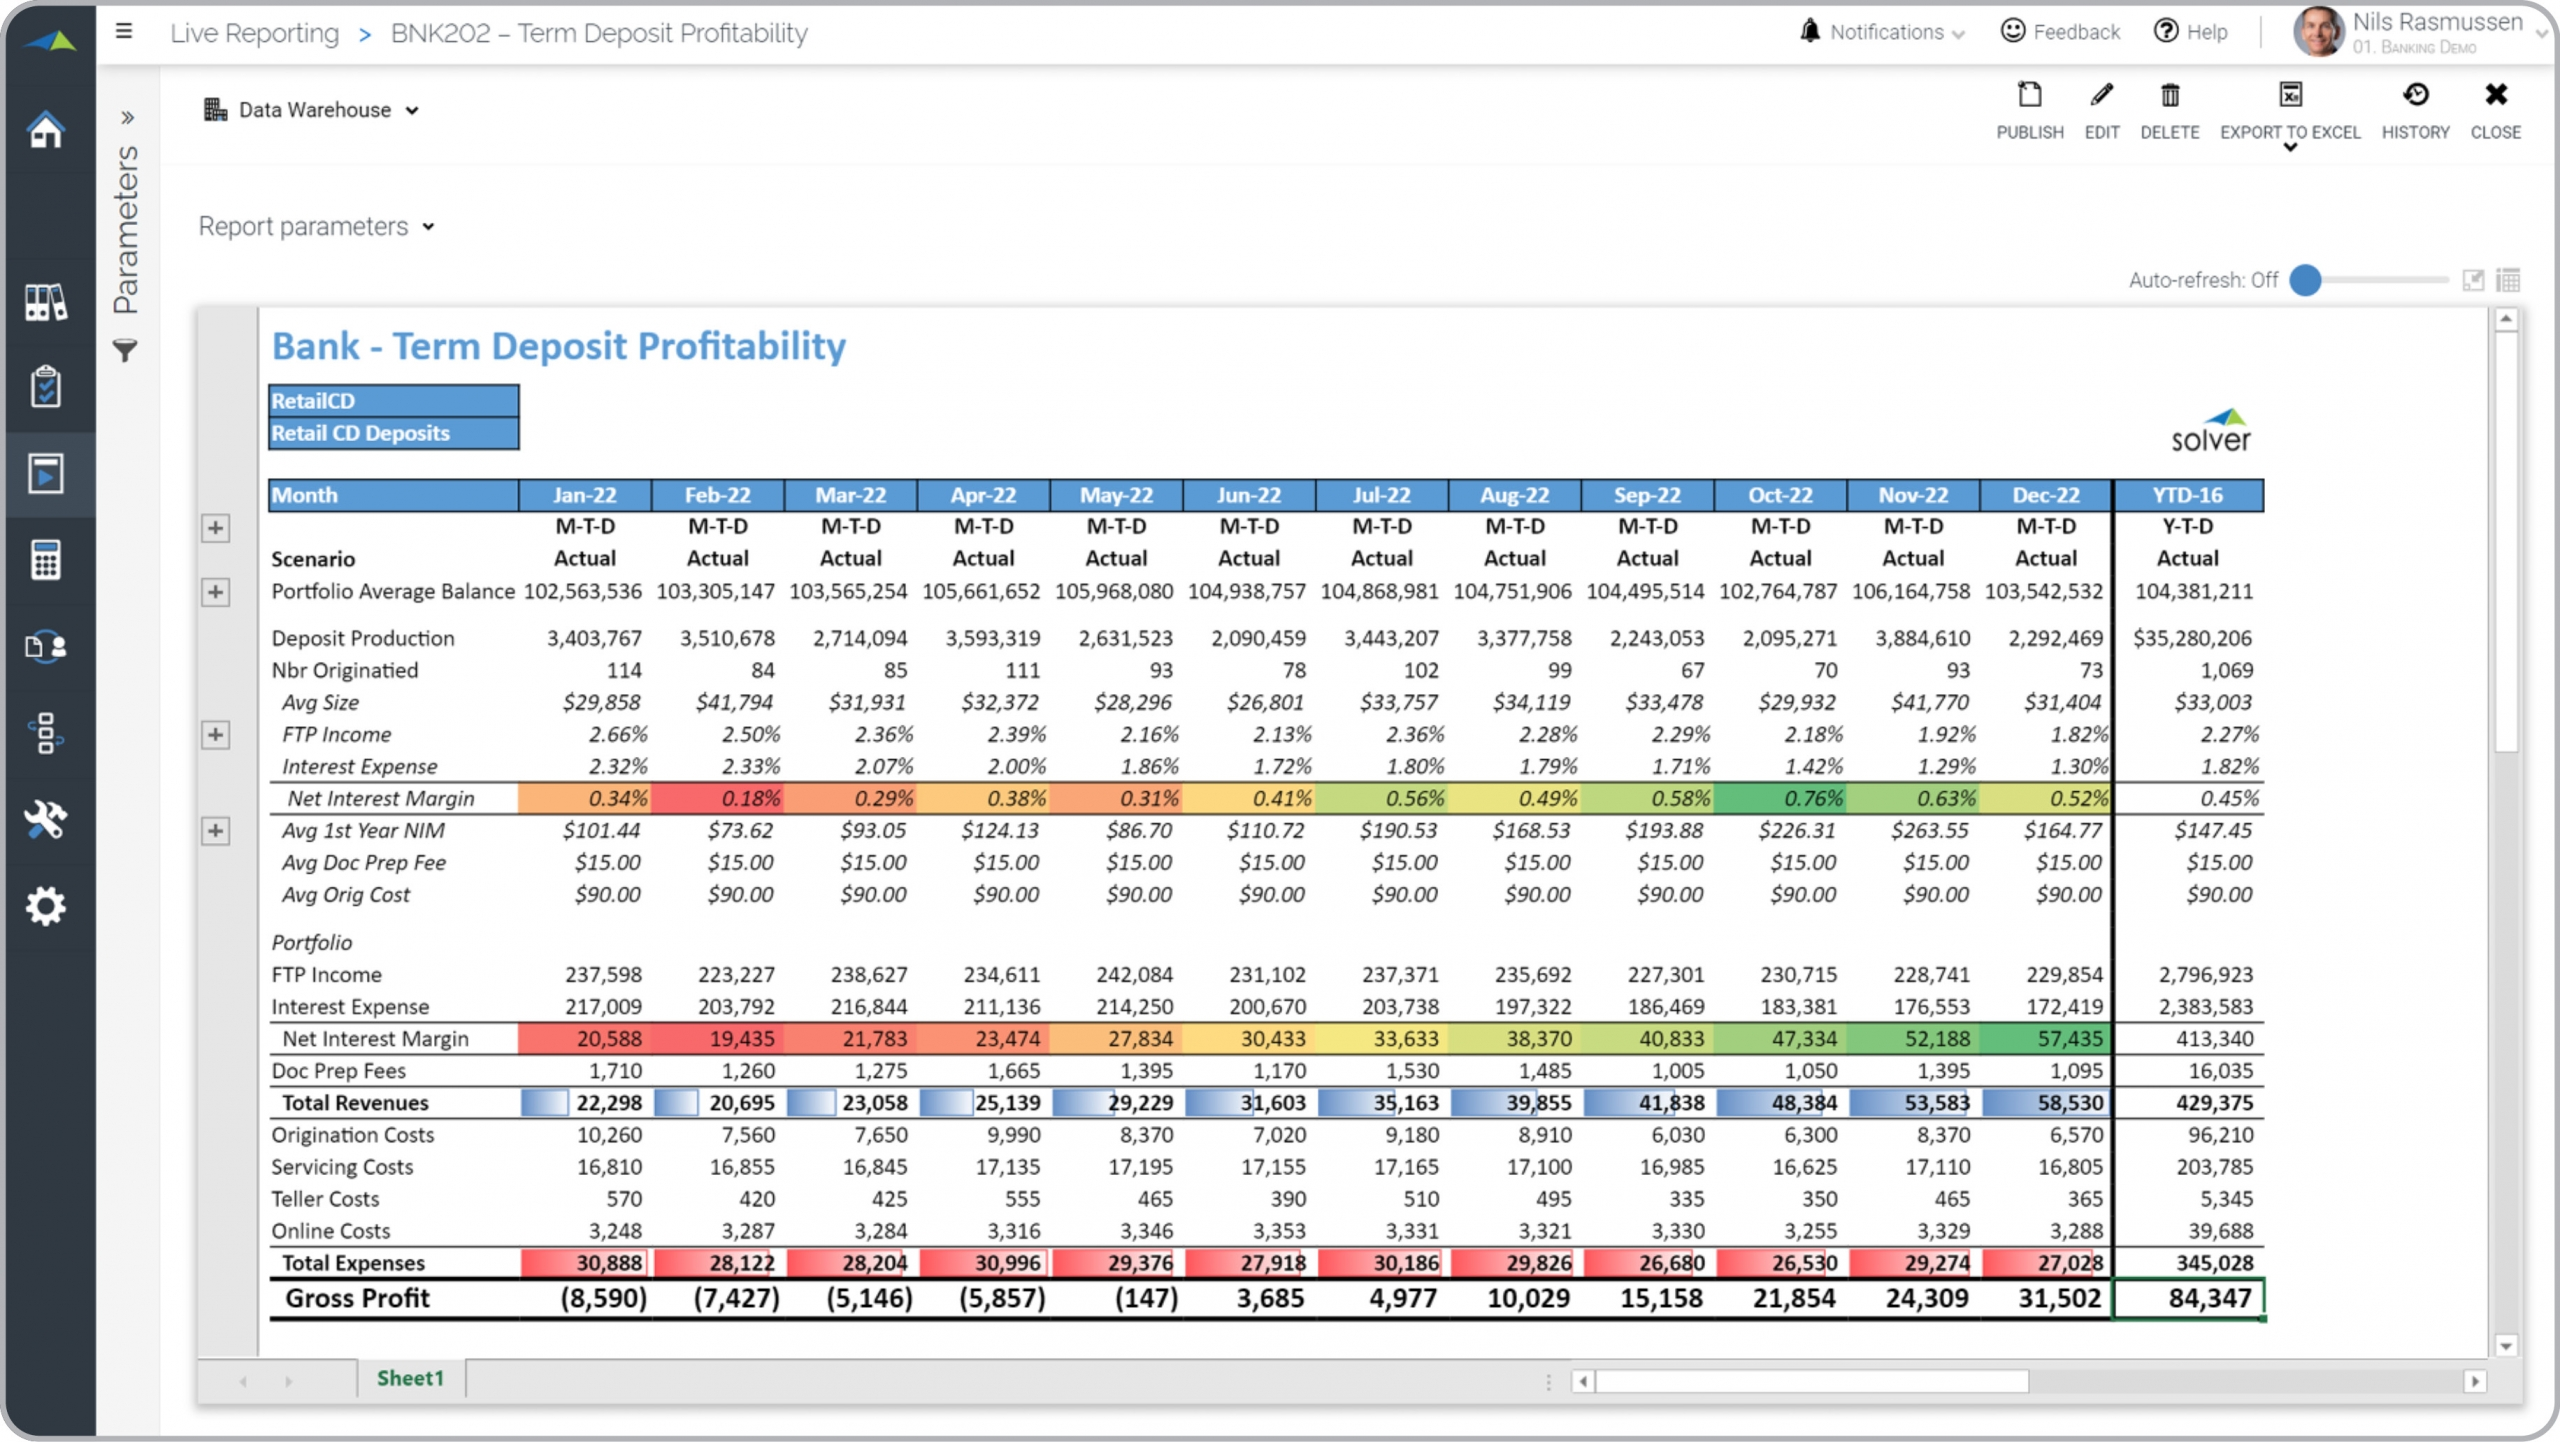 Bank – Term Deposit Profitability